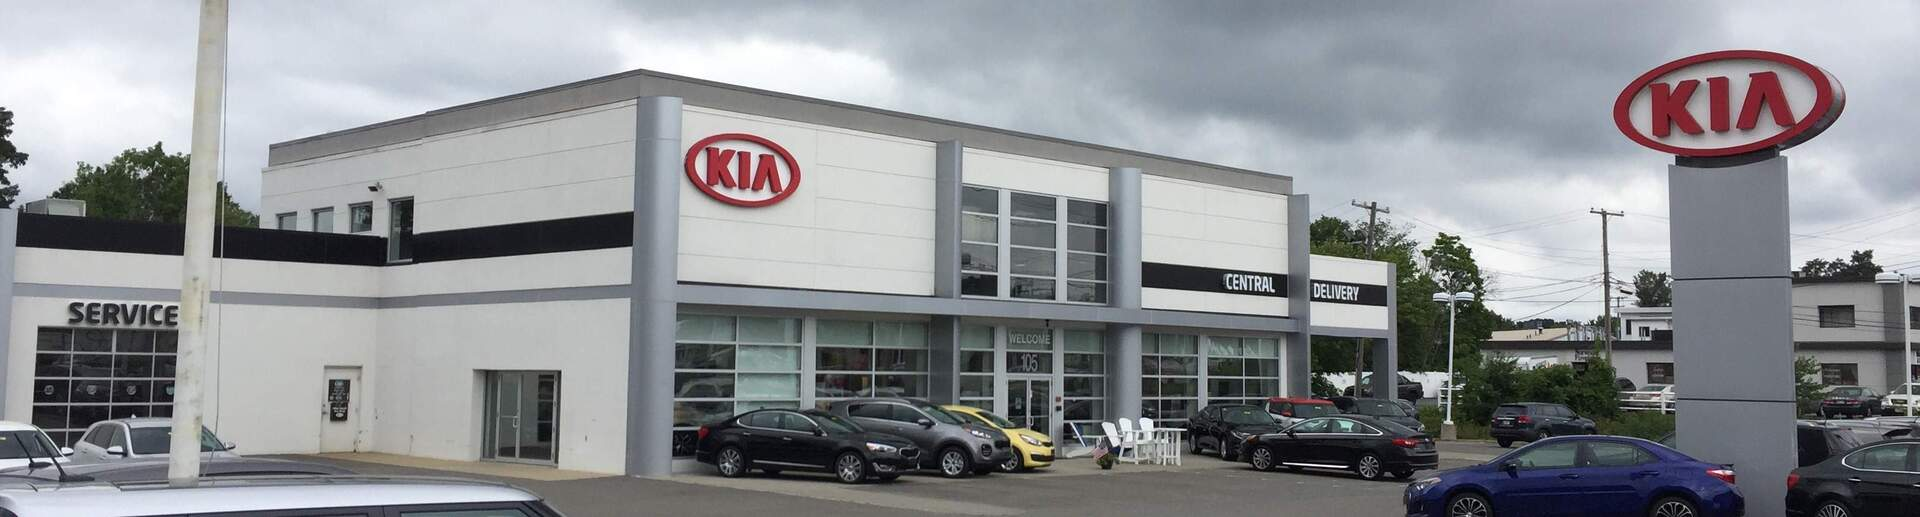 Kia Dealership Norwood MA